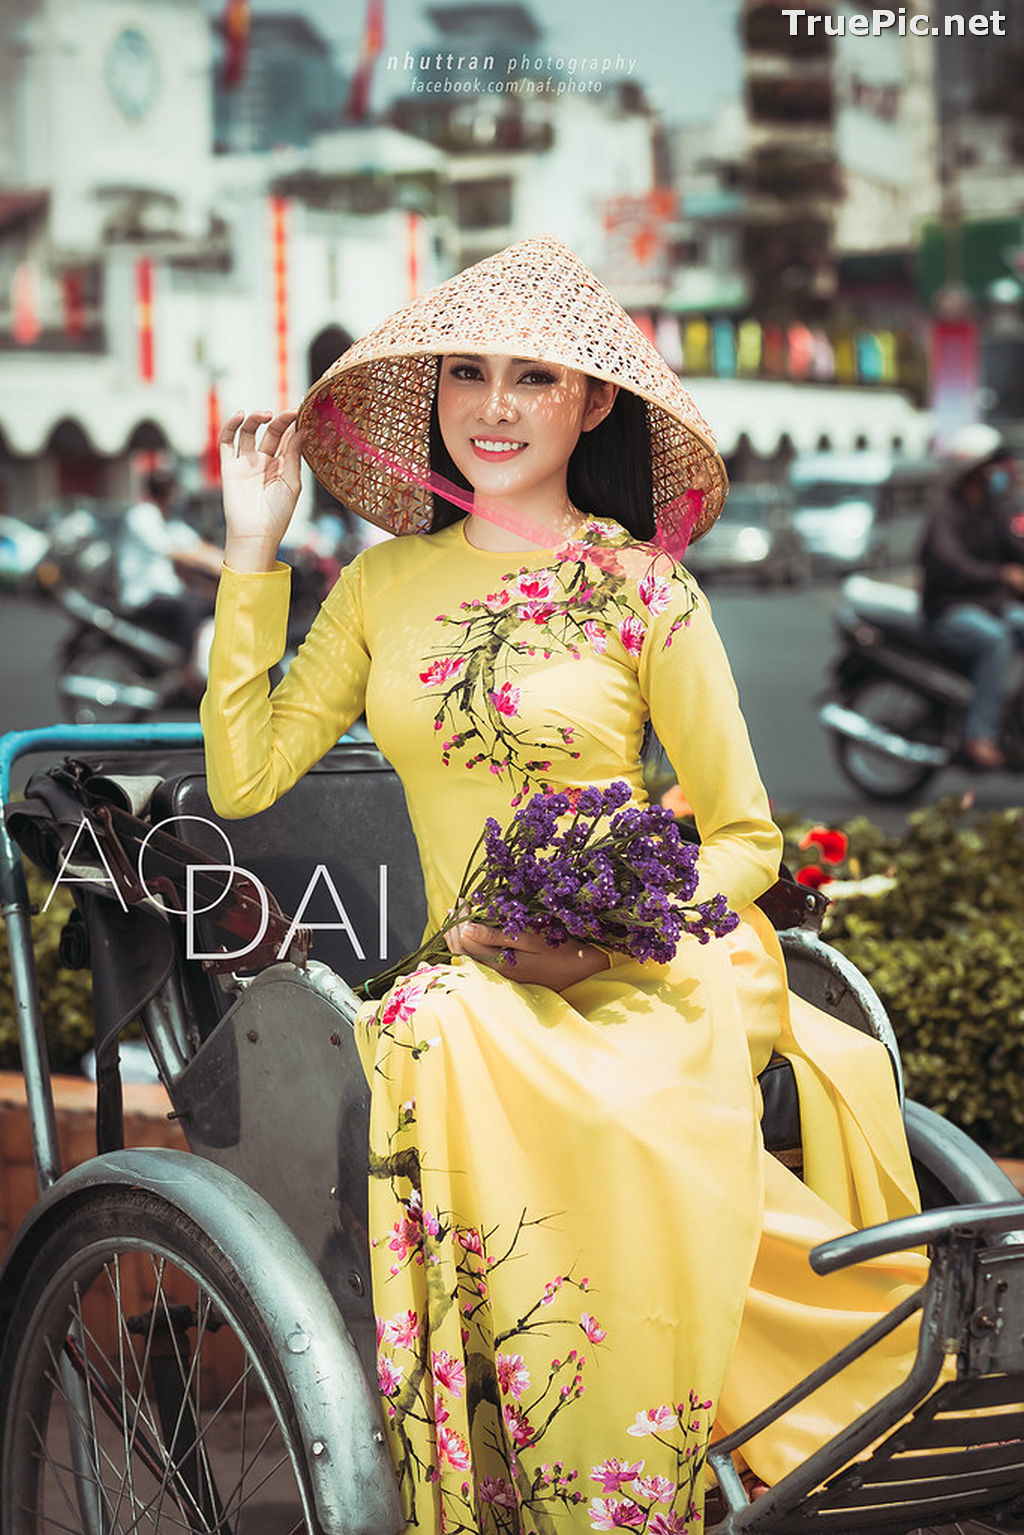 Image The Beauty of Vietnamese Girls with Traditional Dress (Ao Dai) #5 - TruePic.net - Picture-8